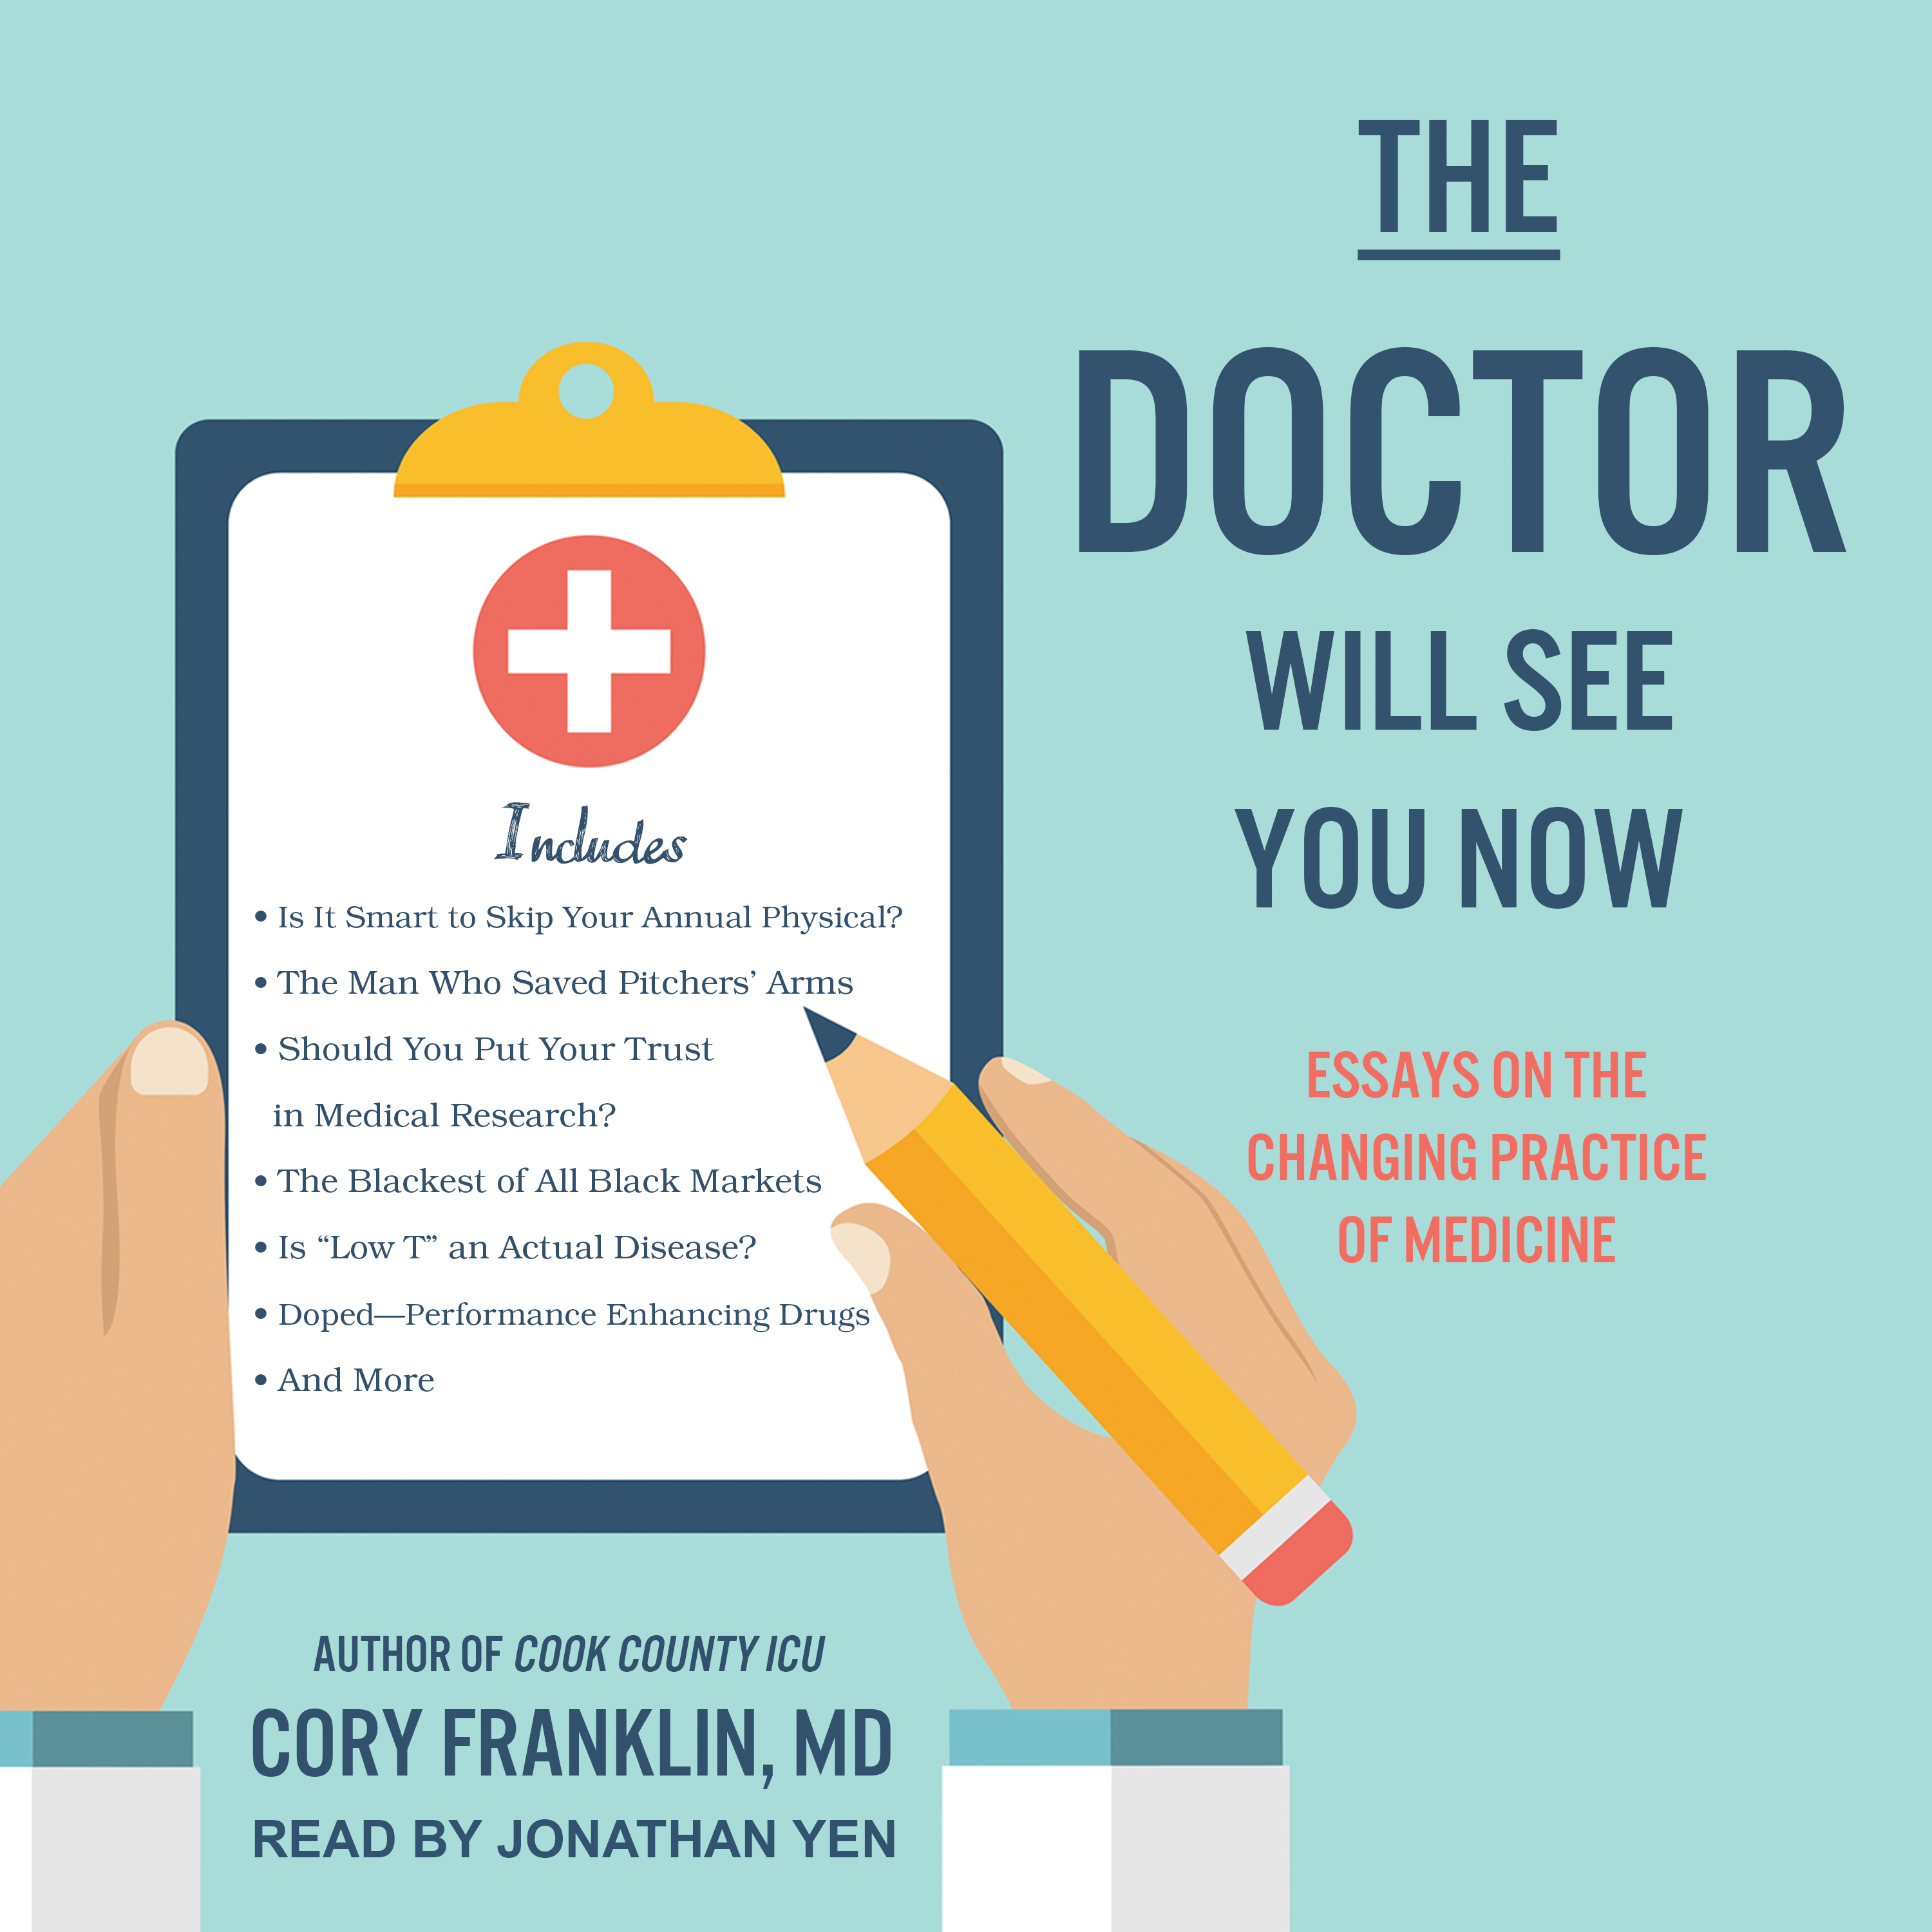 The Doctor Will See You Now  Audiobook  Listen Instantly The Doctor Will See You Now Essays On The Changing Practice Of Medicine  Audiobook